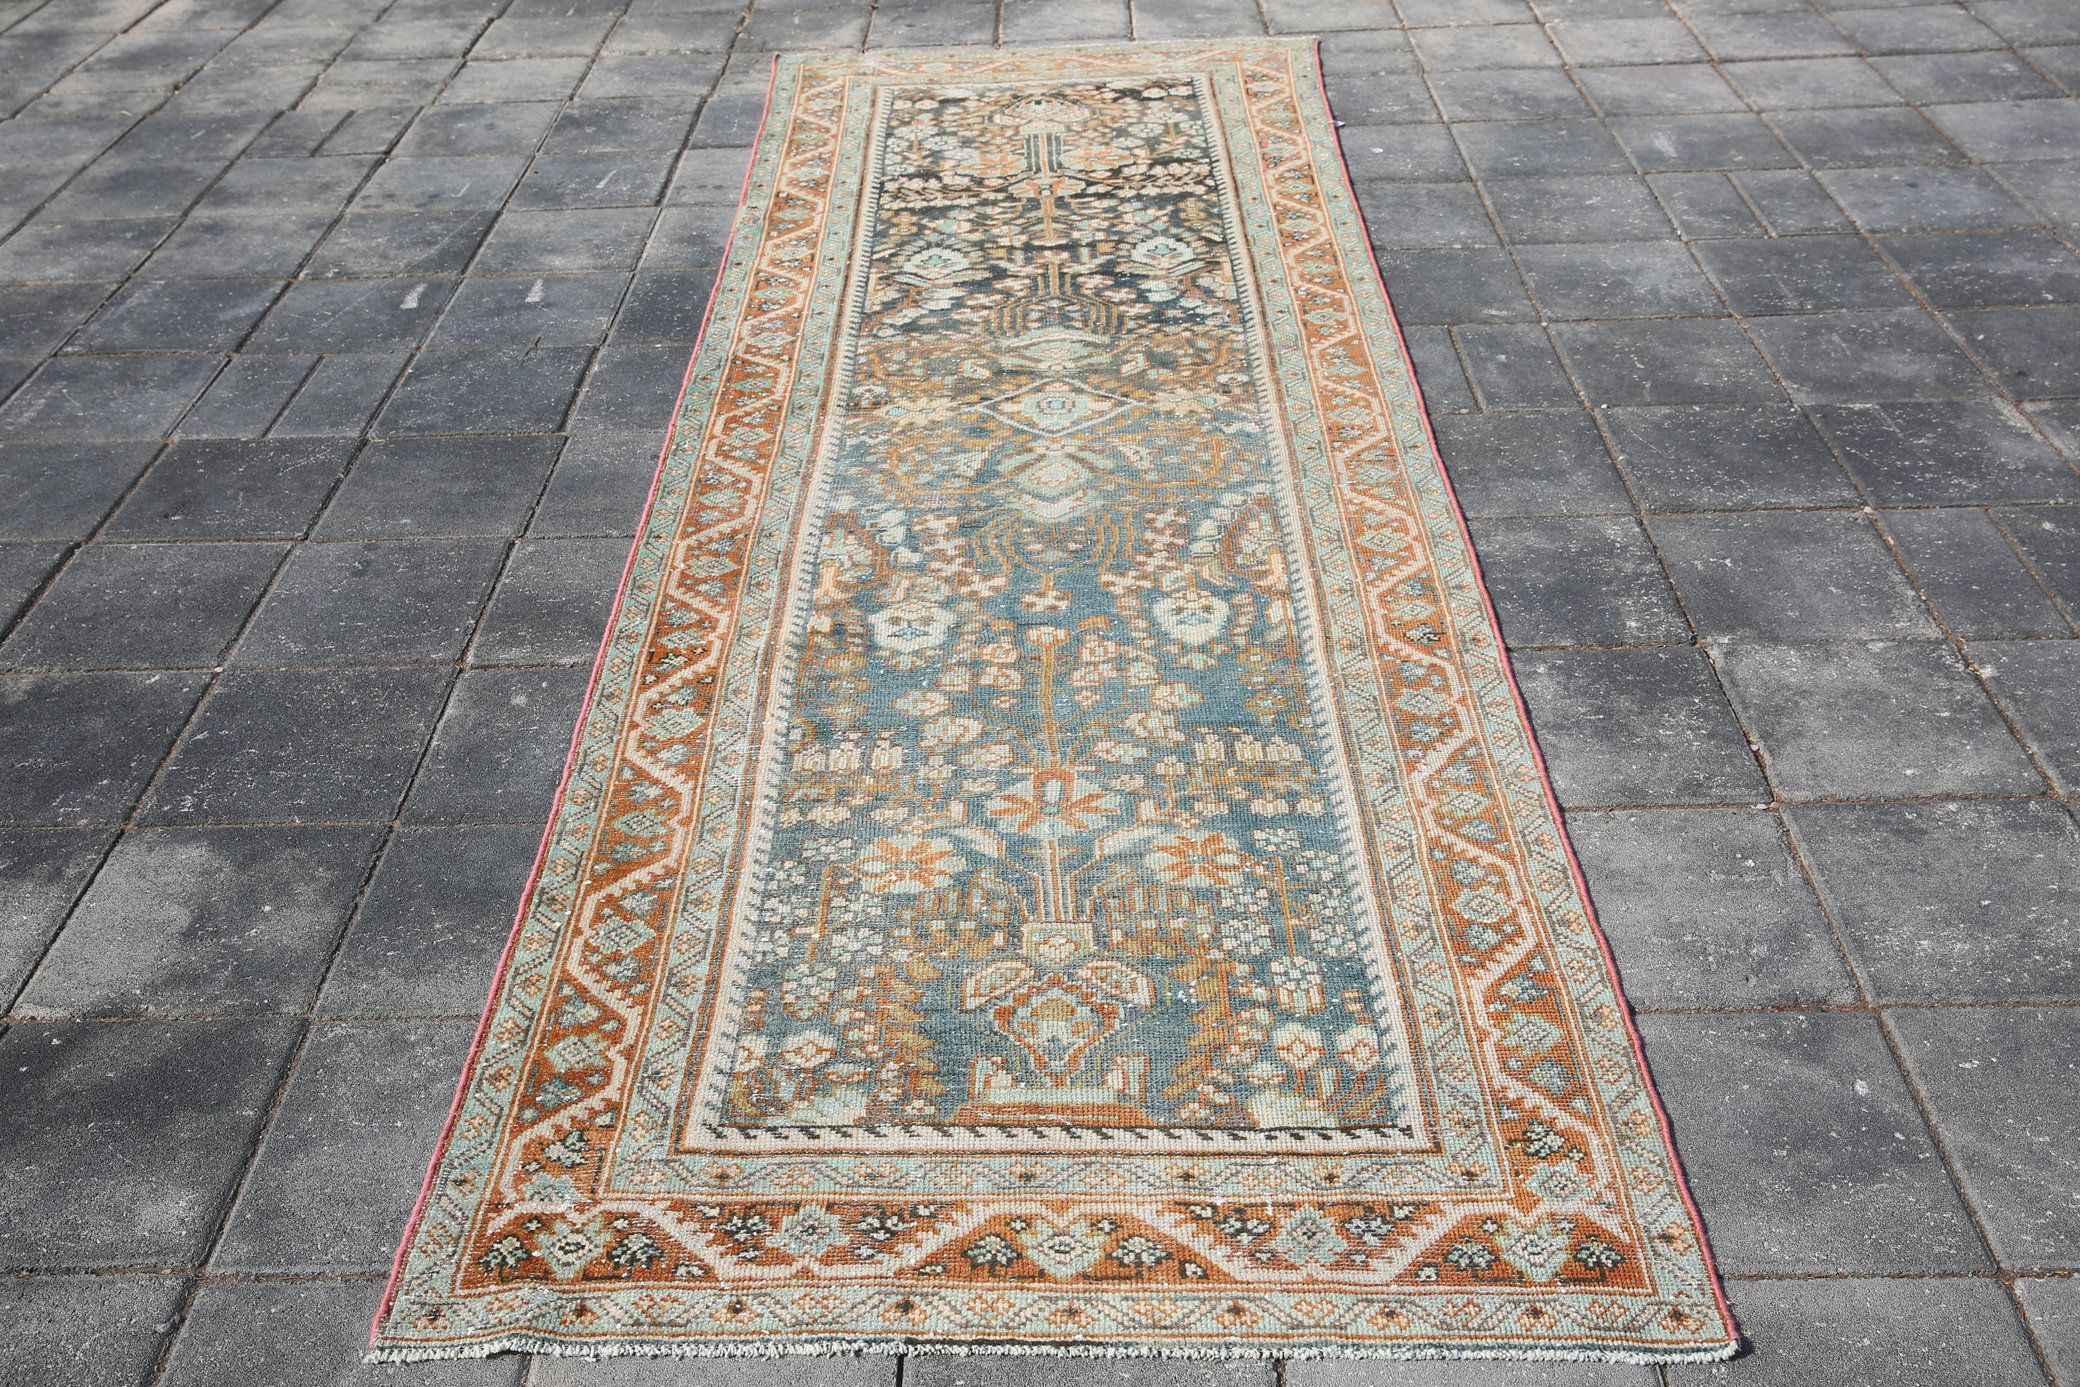 3 5 10 8 Ft 4 11 Turkish Runner Rug Tribal Runner Special Runner Rug Runners Wool Runner Rug Anatolian Runner Rug Antique Runner Sku 3683 In 2020 Rug Runners Wool Runner Rug Antique Runner